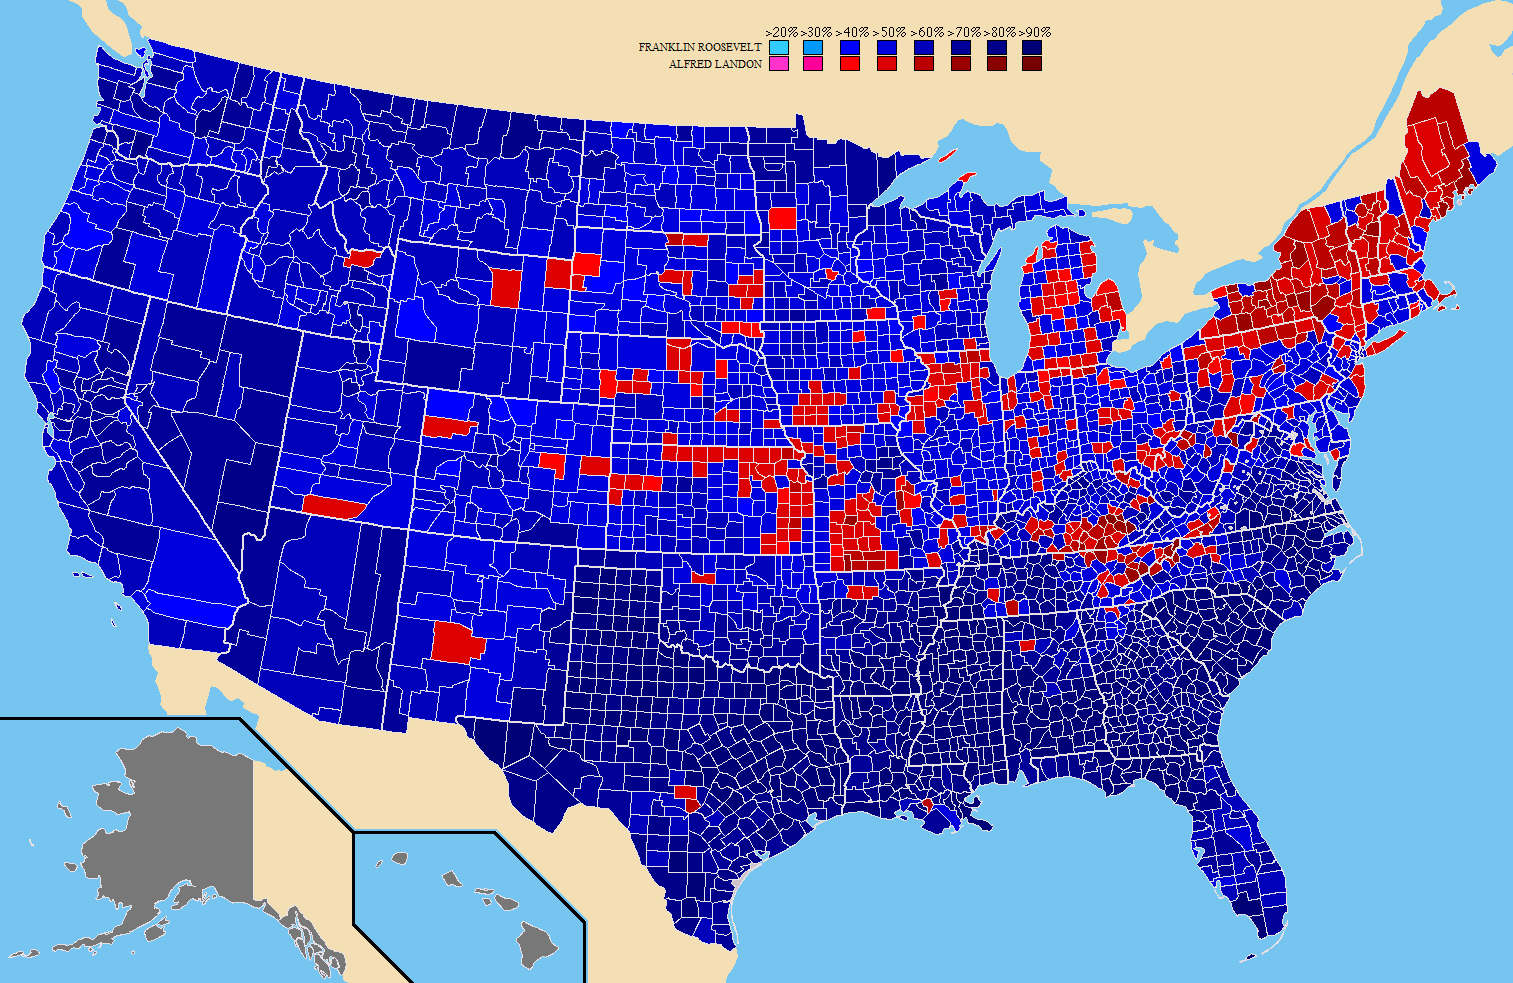 US Election Results By County In MAPS Pinterest - Map of population density us election